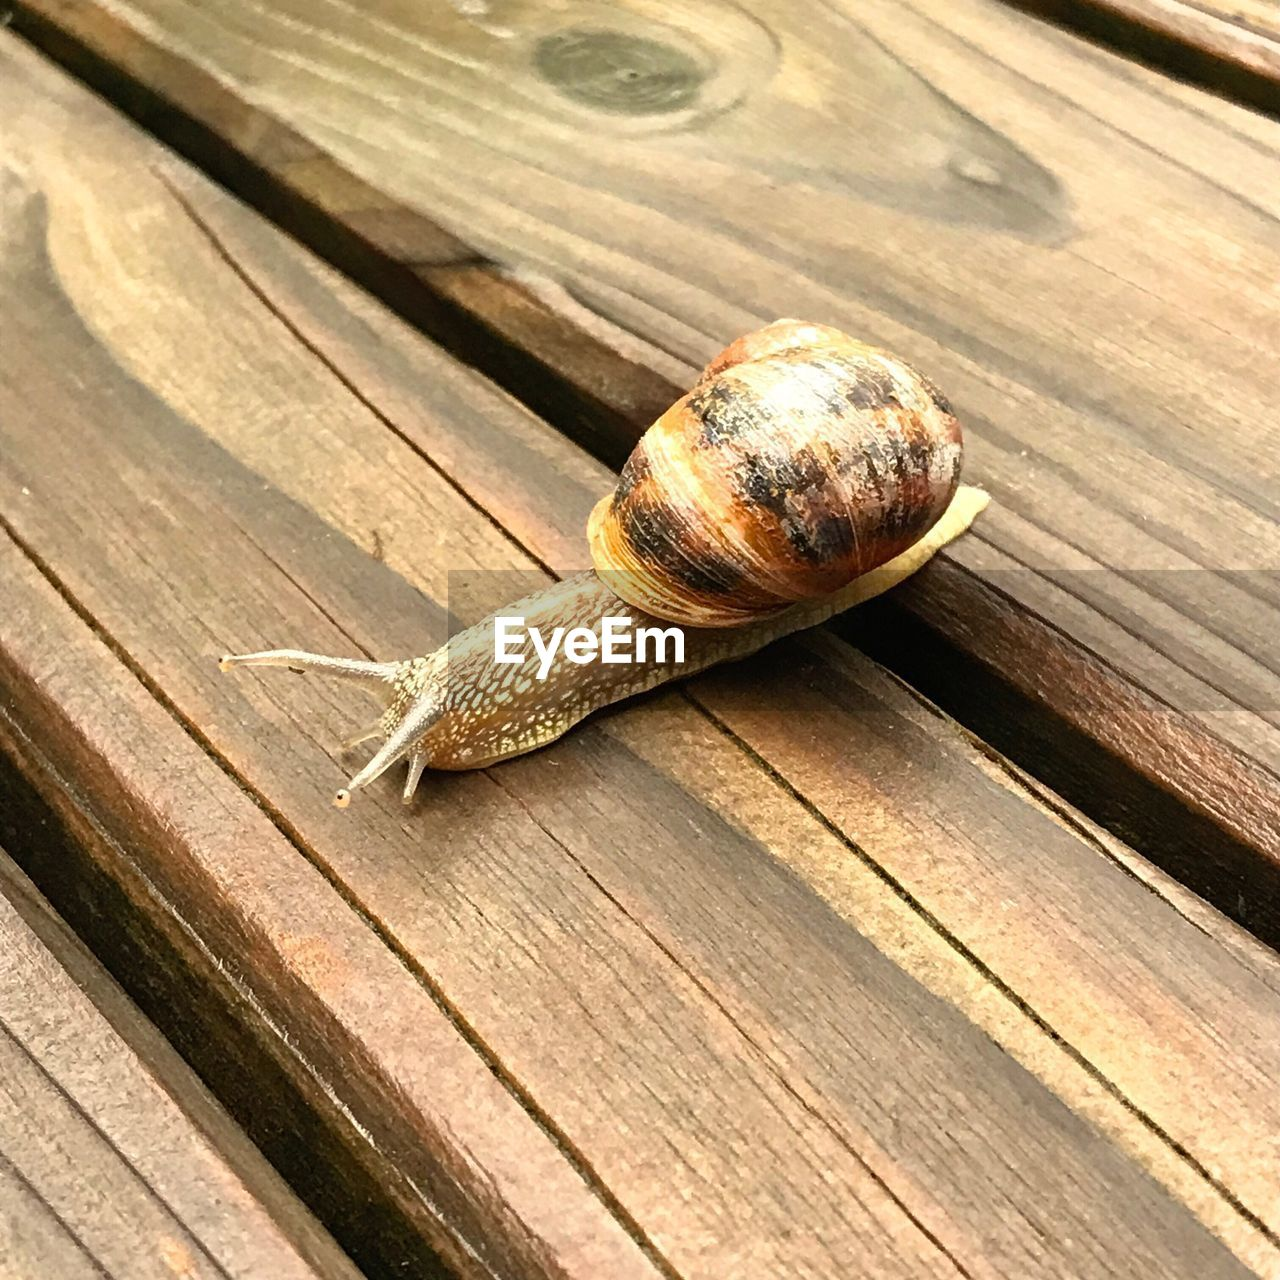 animal, animal wildlife, wood - material, gastropod, animal themes, mollusk, shell, snail, invertebrate, boredom, close-up, animals in the wild, one animal, animal shell, no people, brown, crawling, outdoors, slimy, nature, wood